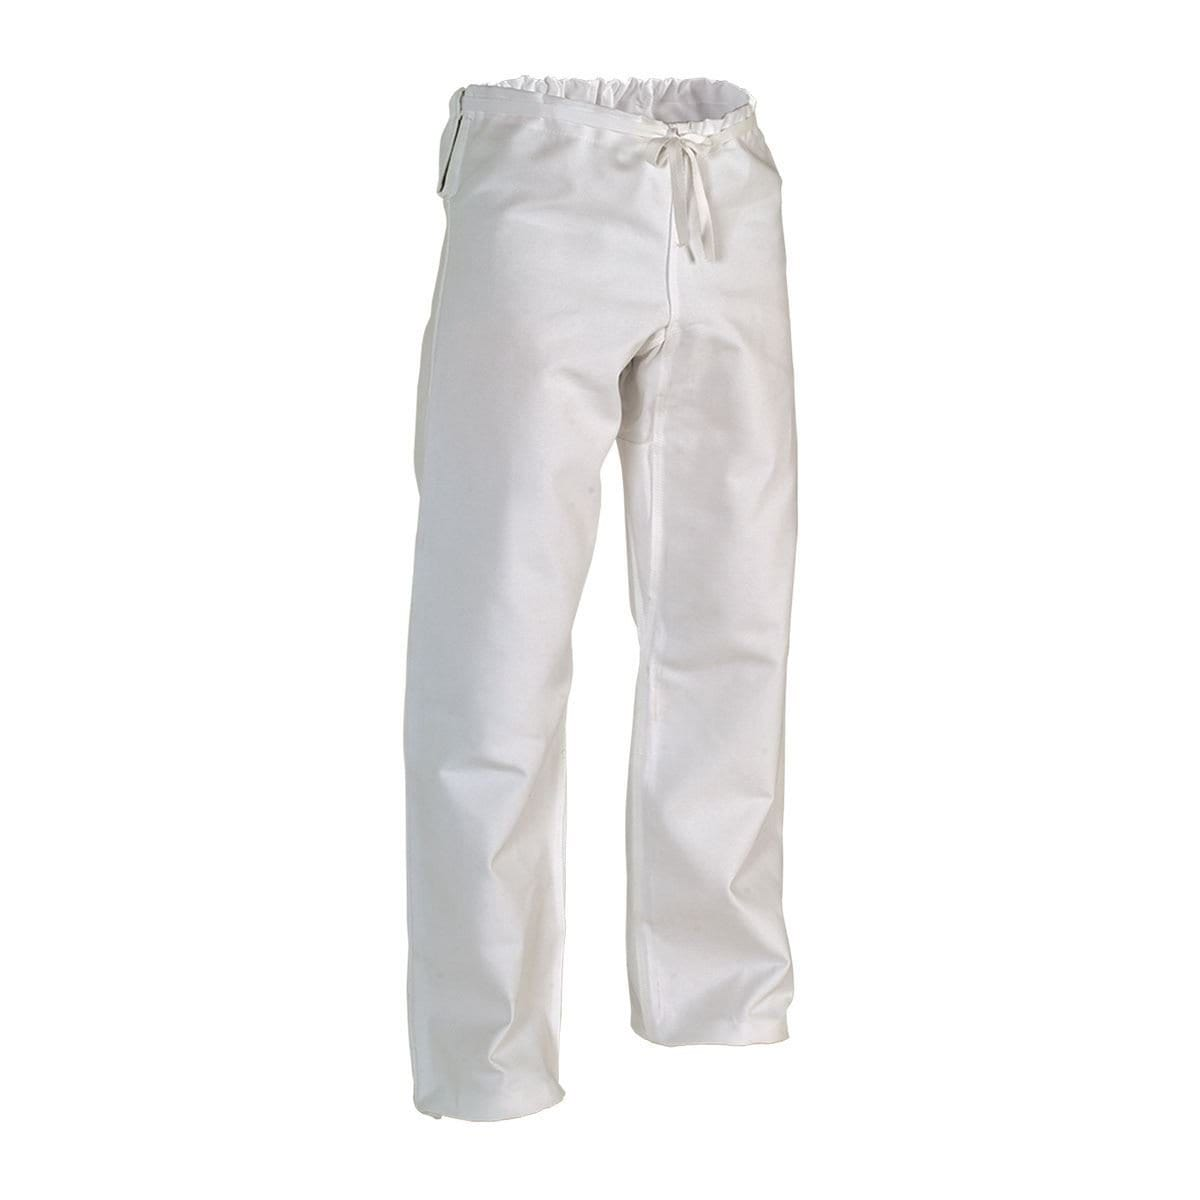 white 12 oz. Heavyweight Traditional Pant